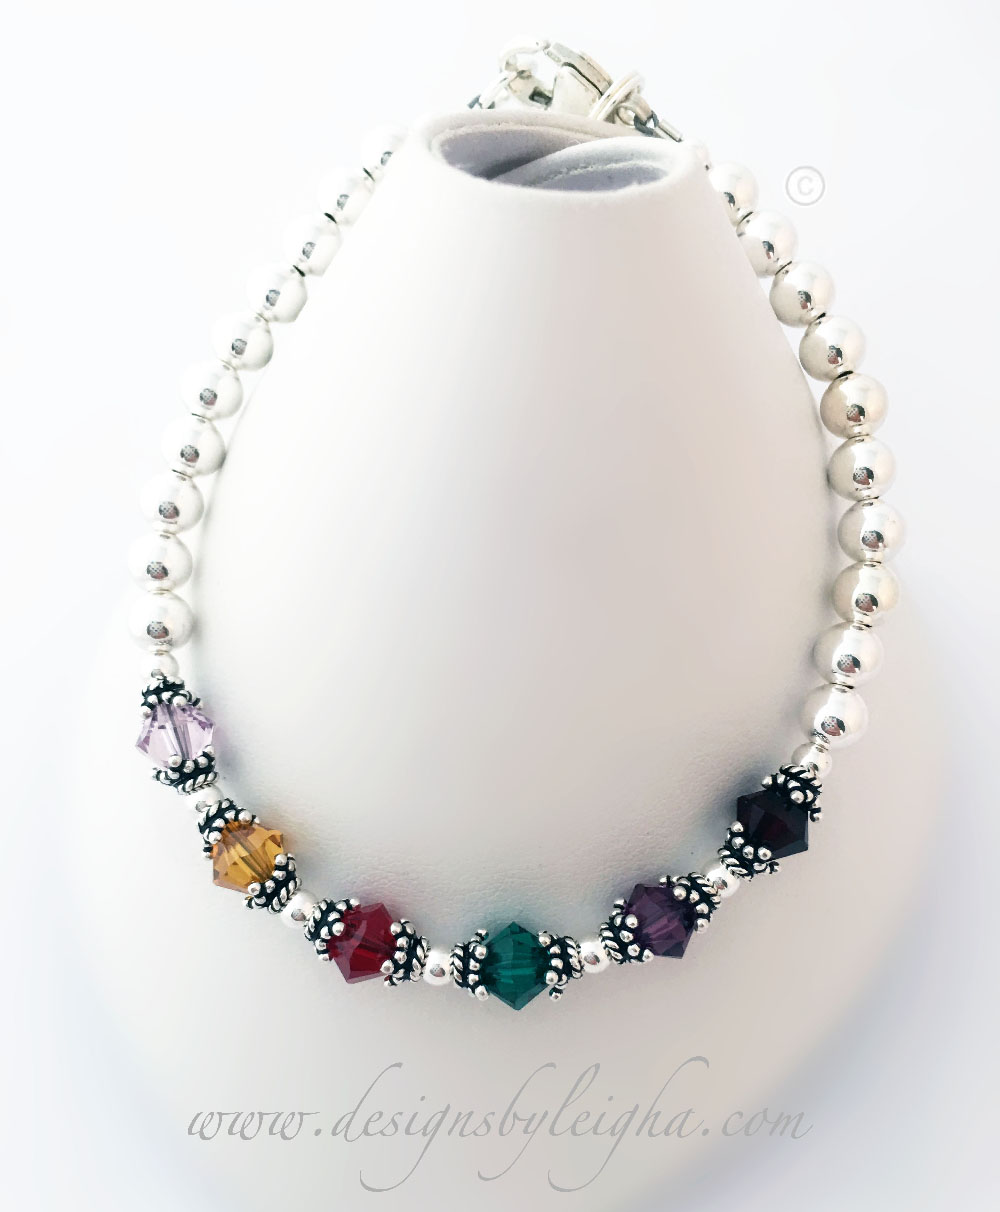 This is a 6 Birthstone Bracelet shown: June, November, July, May, February and January are shown (Violet, Golden Topaz, Ruby, Emerald, Amethyst and Garnet).